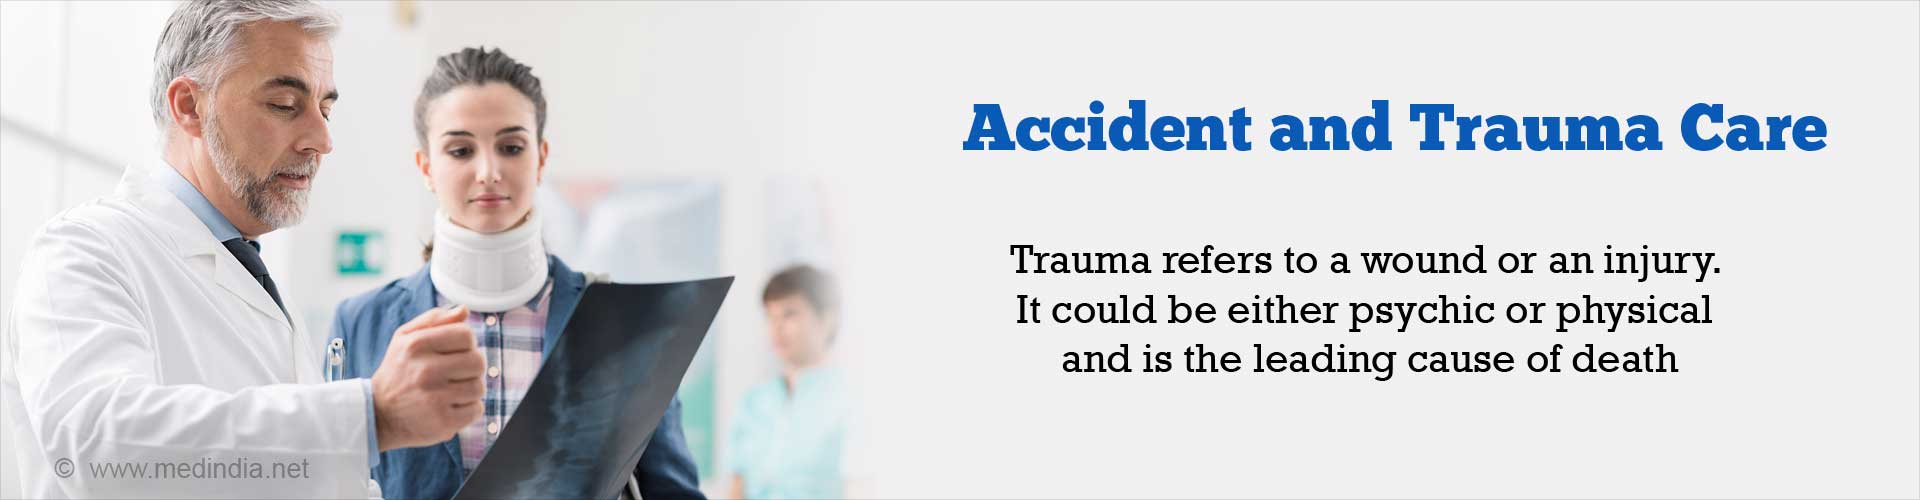 Accident and Trauma Care